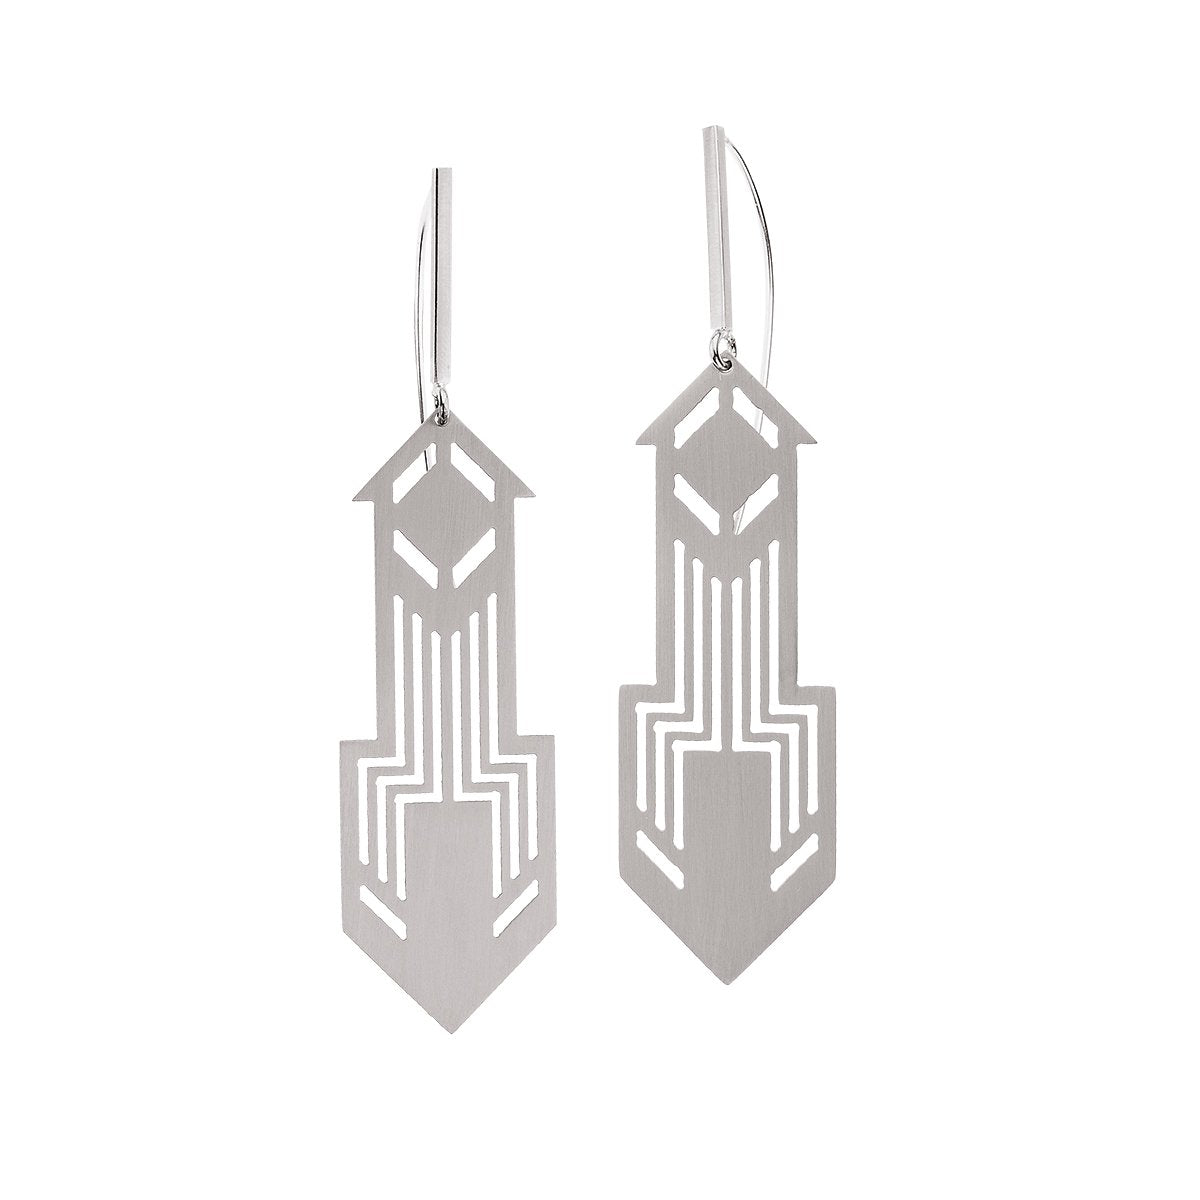 Earrings from Nano collection - NAK28-5